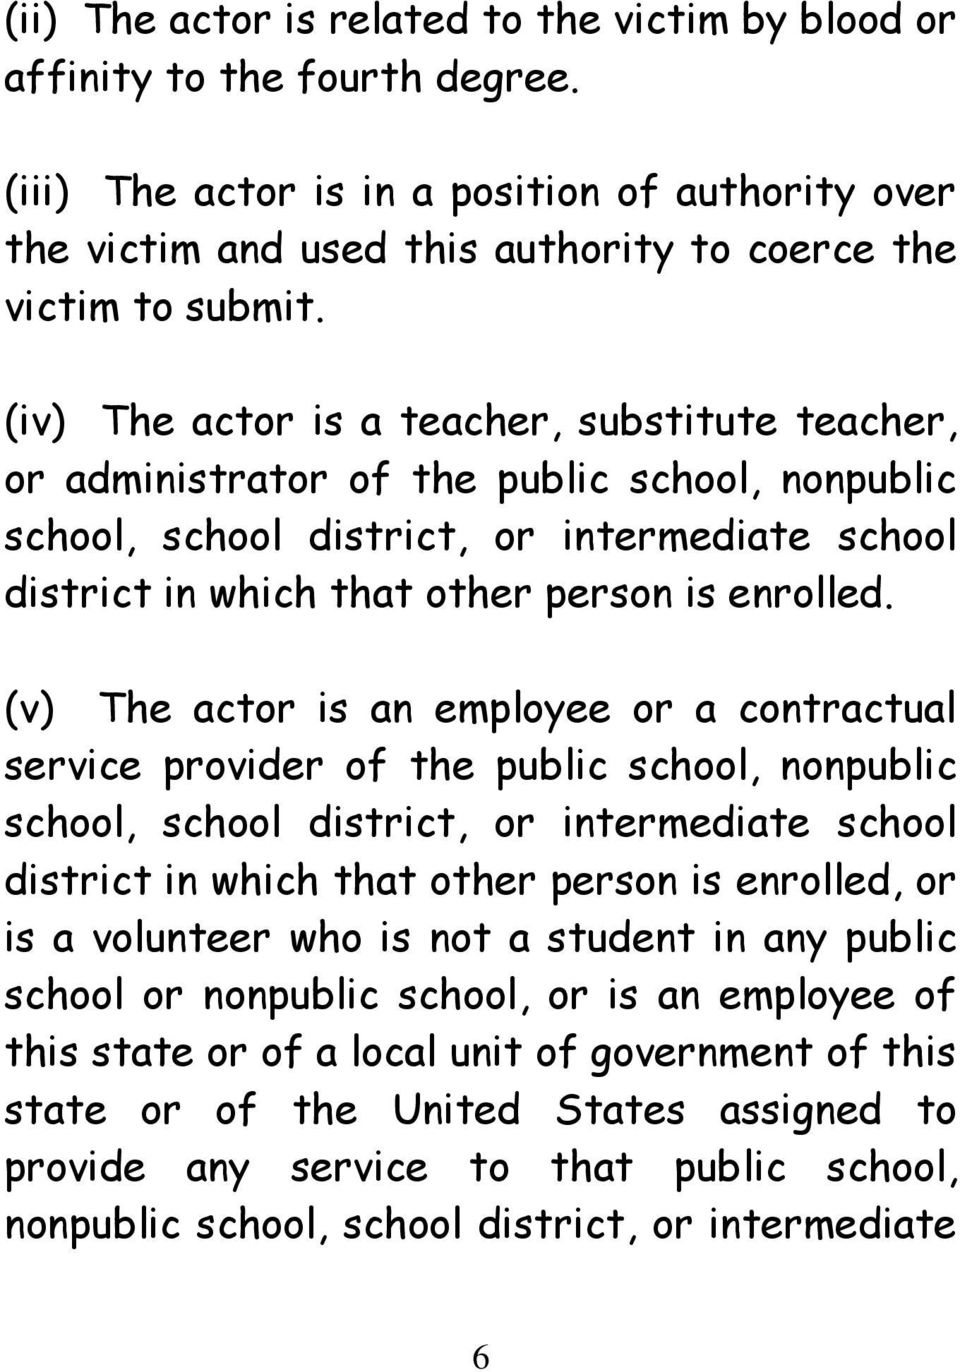 (v) The actor is an employee or a contractual service provider of the public school, nonpublic school, school district, or intermediate school district in which that other person is enrolled, or is a